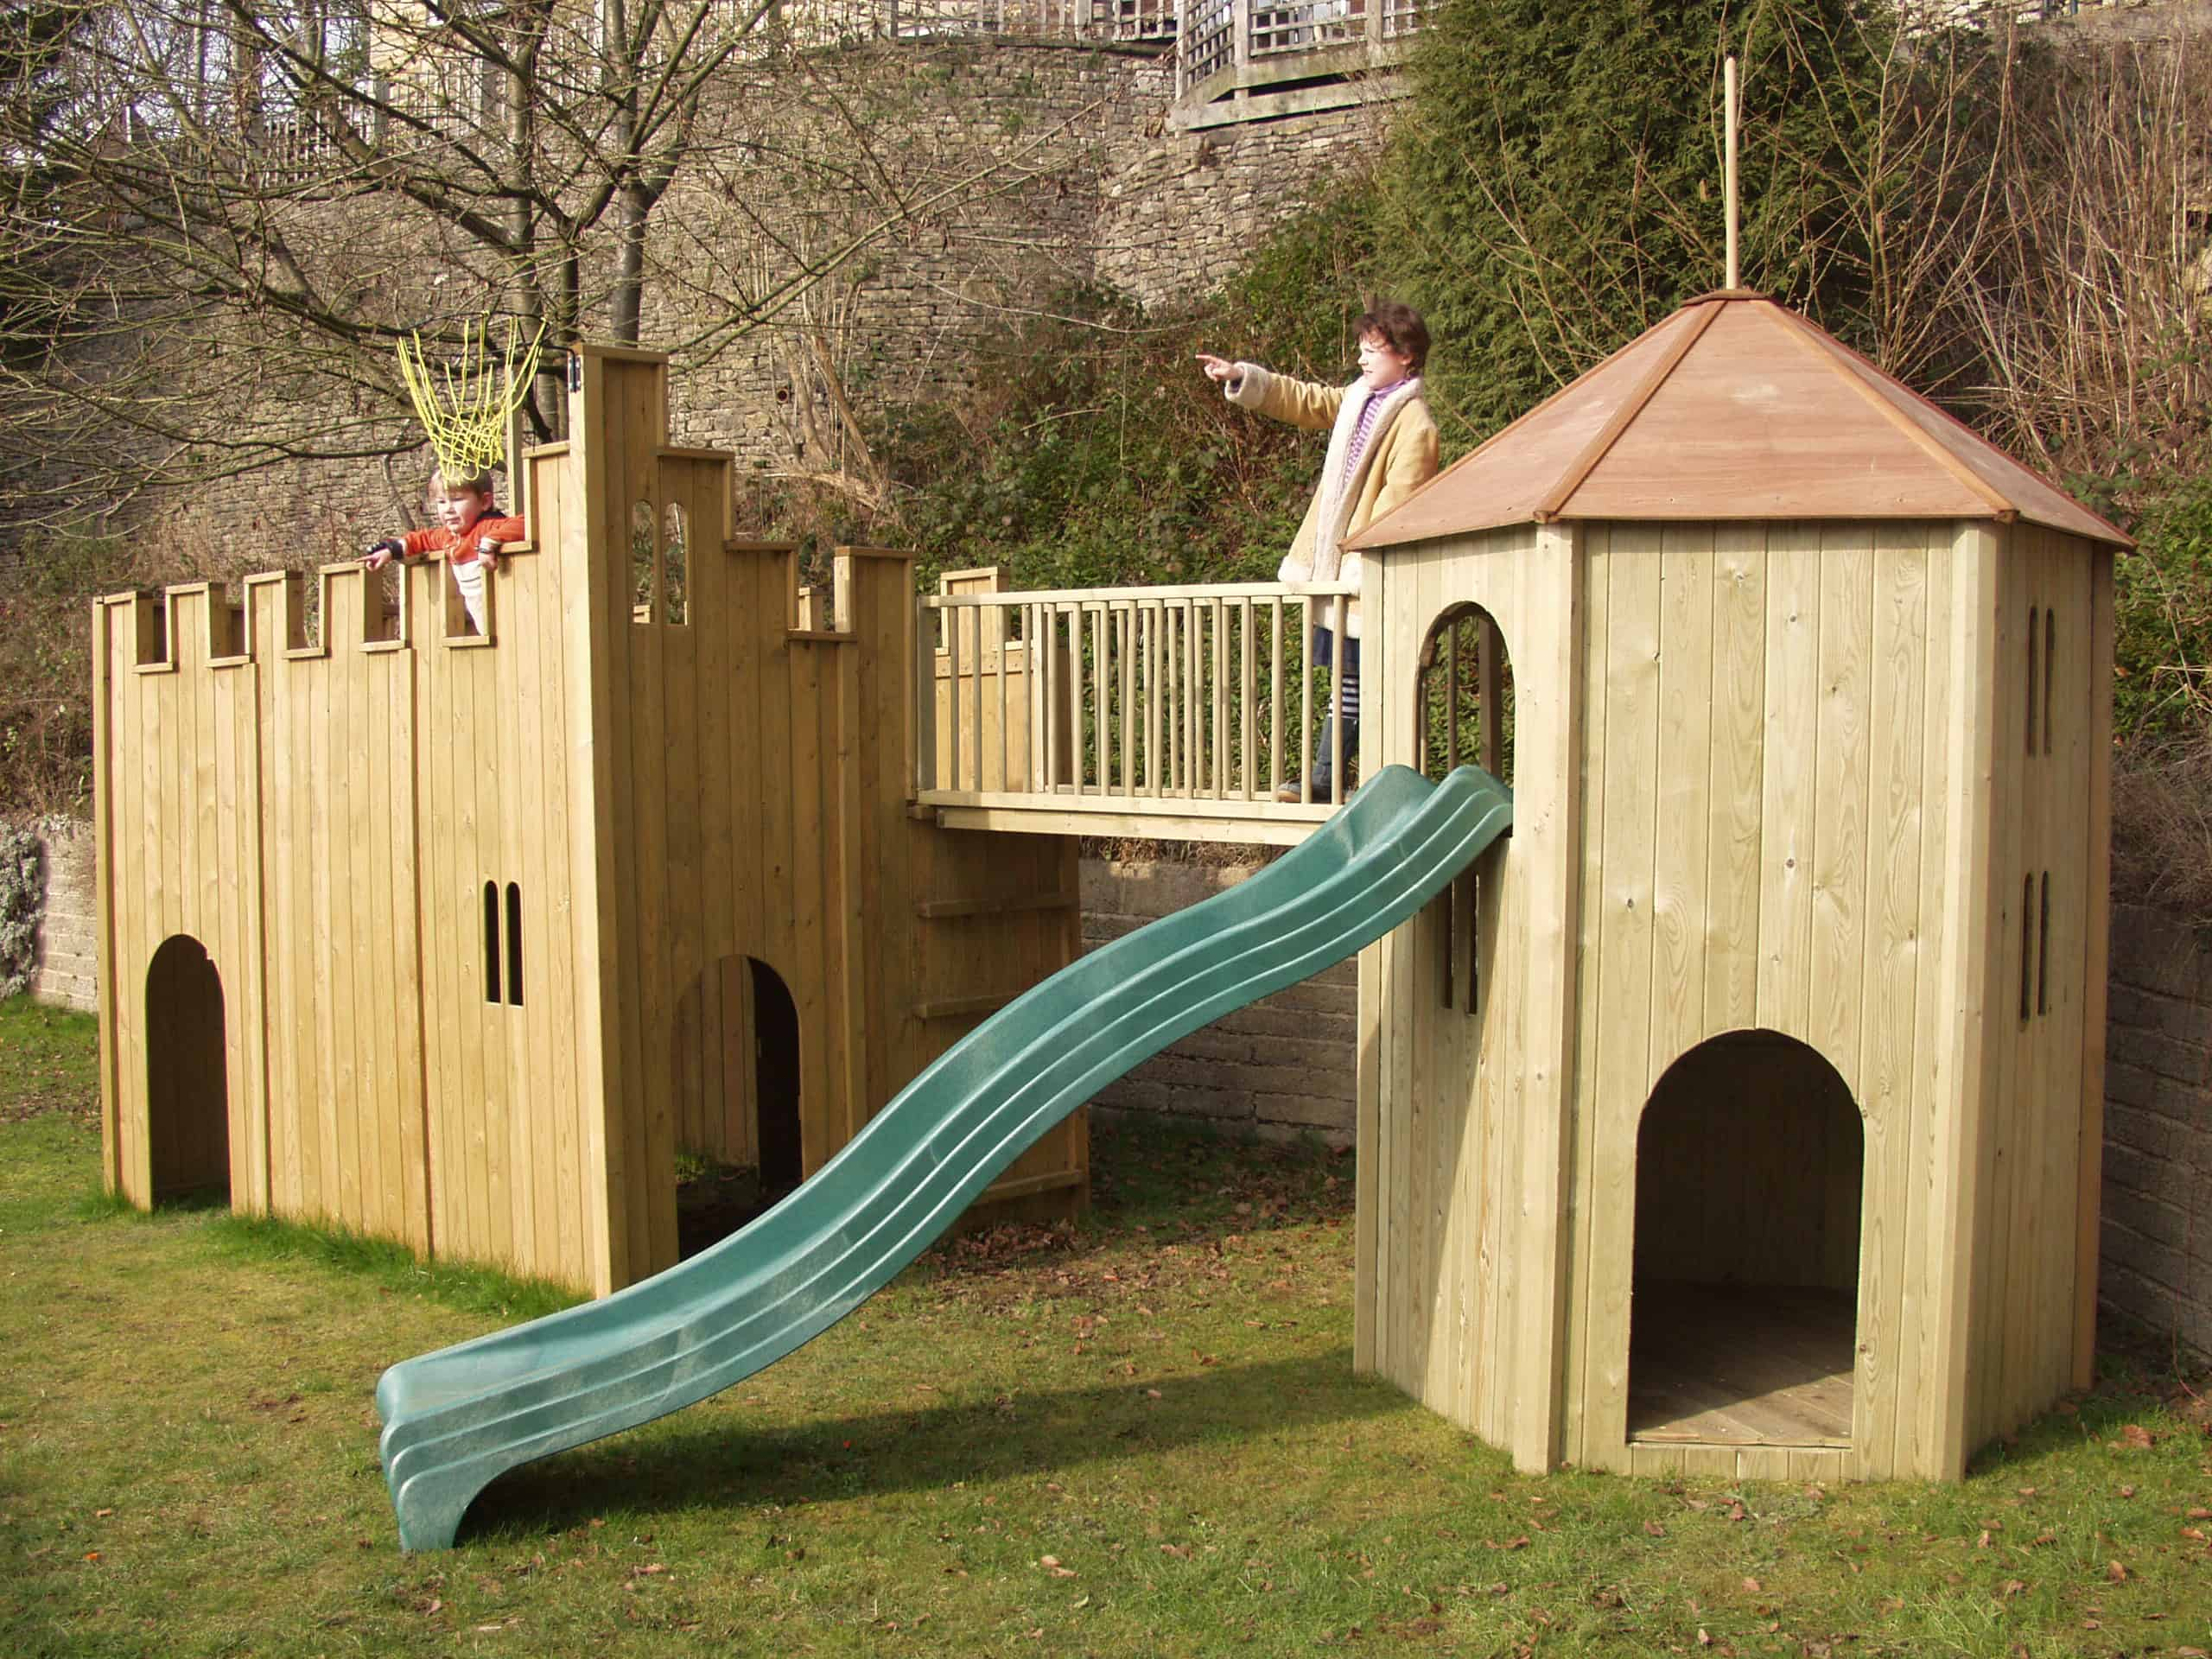 All Out Play Tower | Wooden Climbing Frames | The Toy Barn Playhouse Designs Castle on castle playhouse ideas, castle playhouse with slide, castle bedroom designs, cardboard castle designs, castle playhouse plans, castle patio designs, lego castle designs,